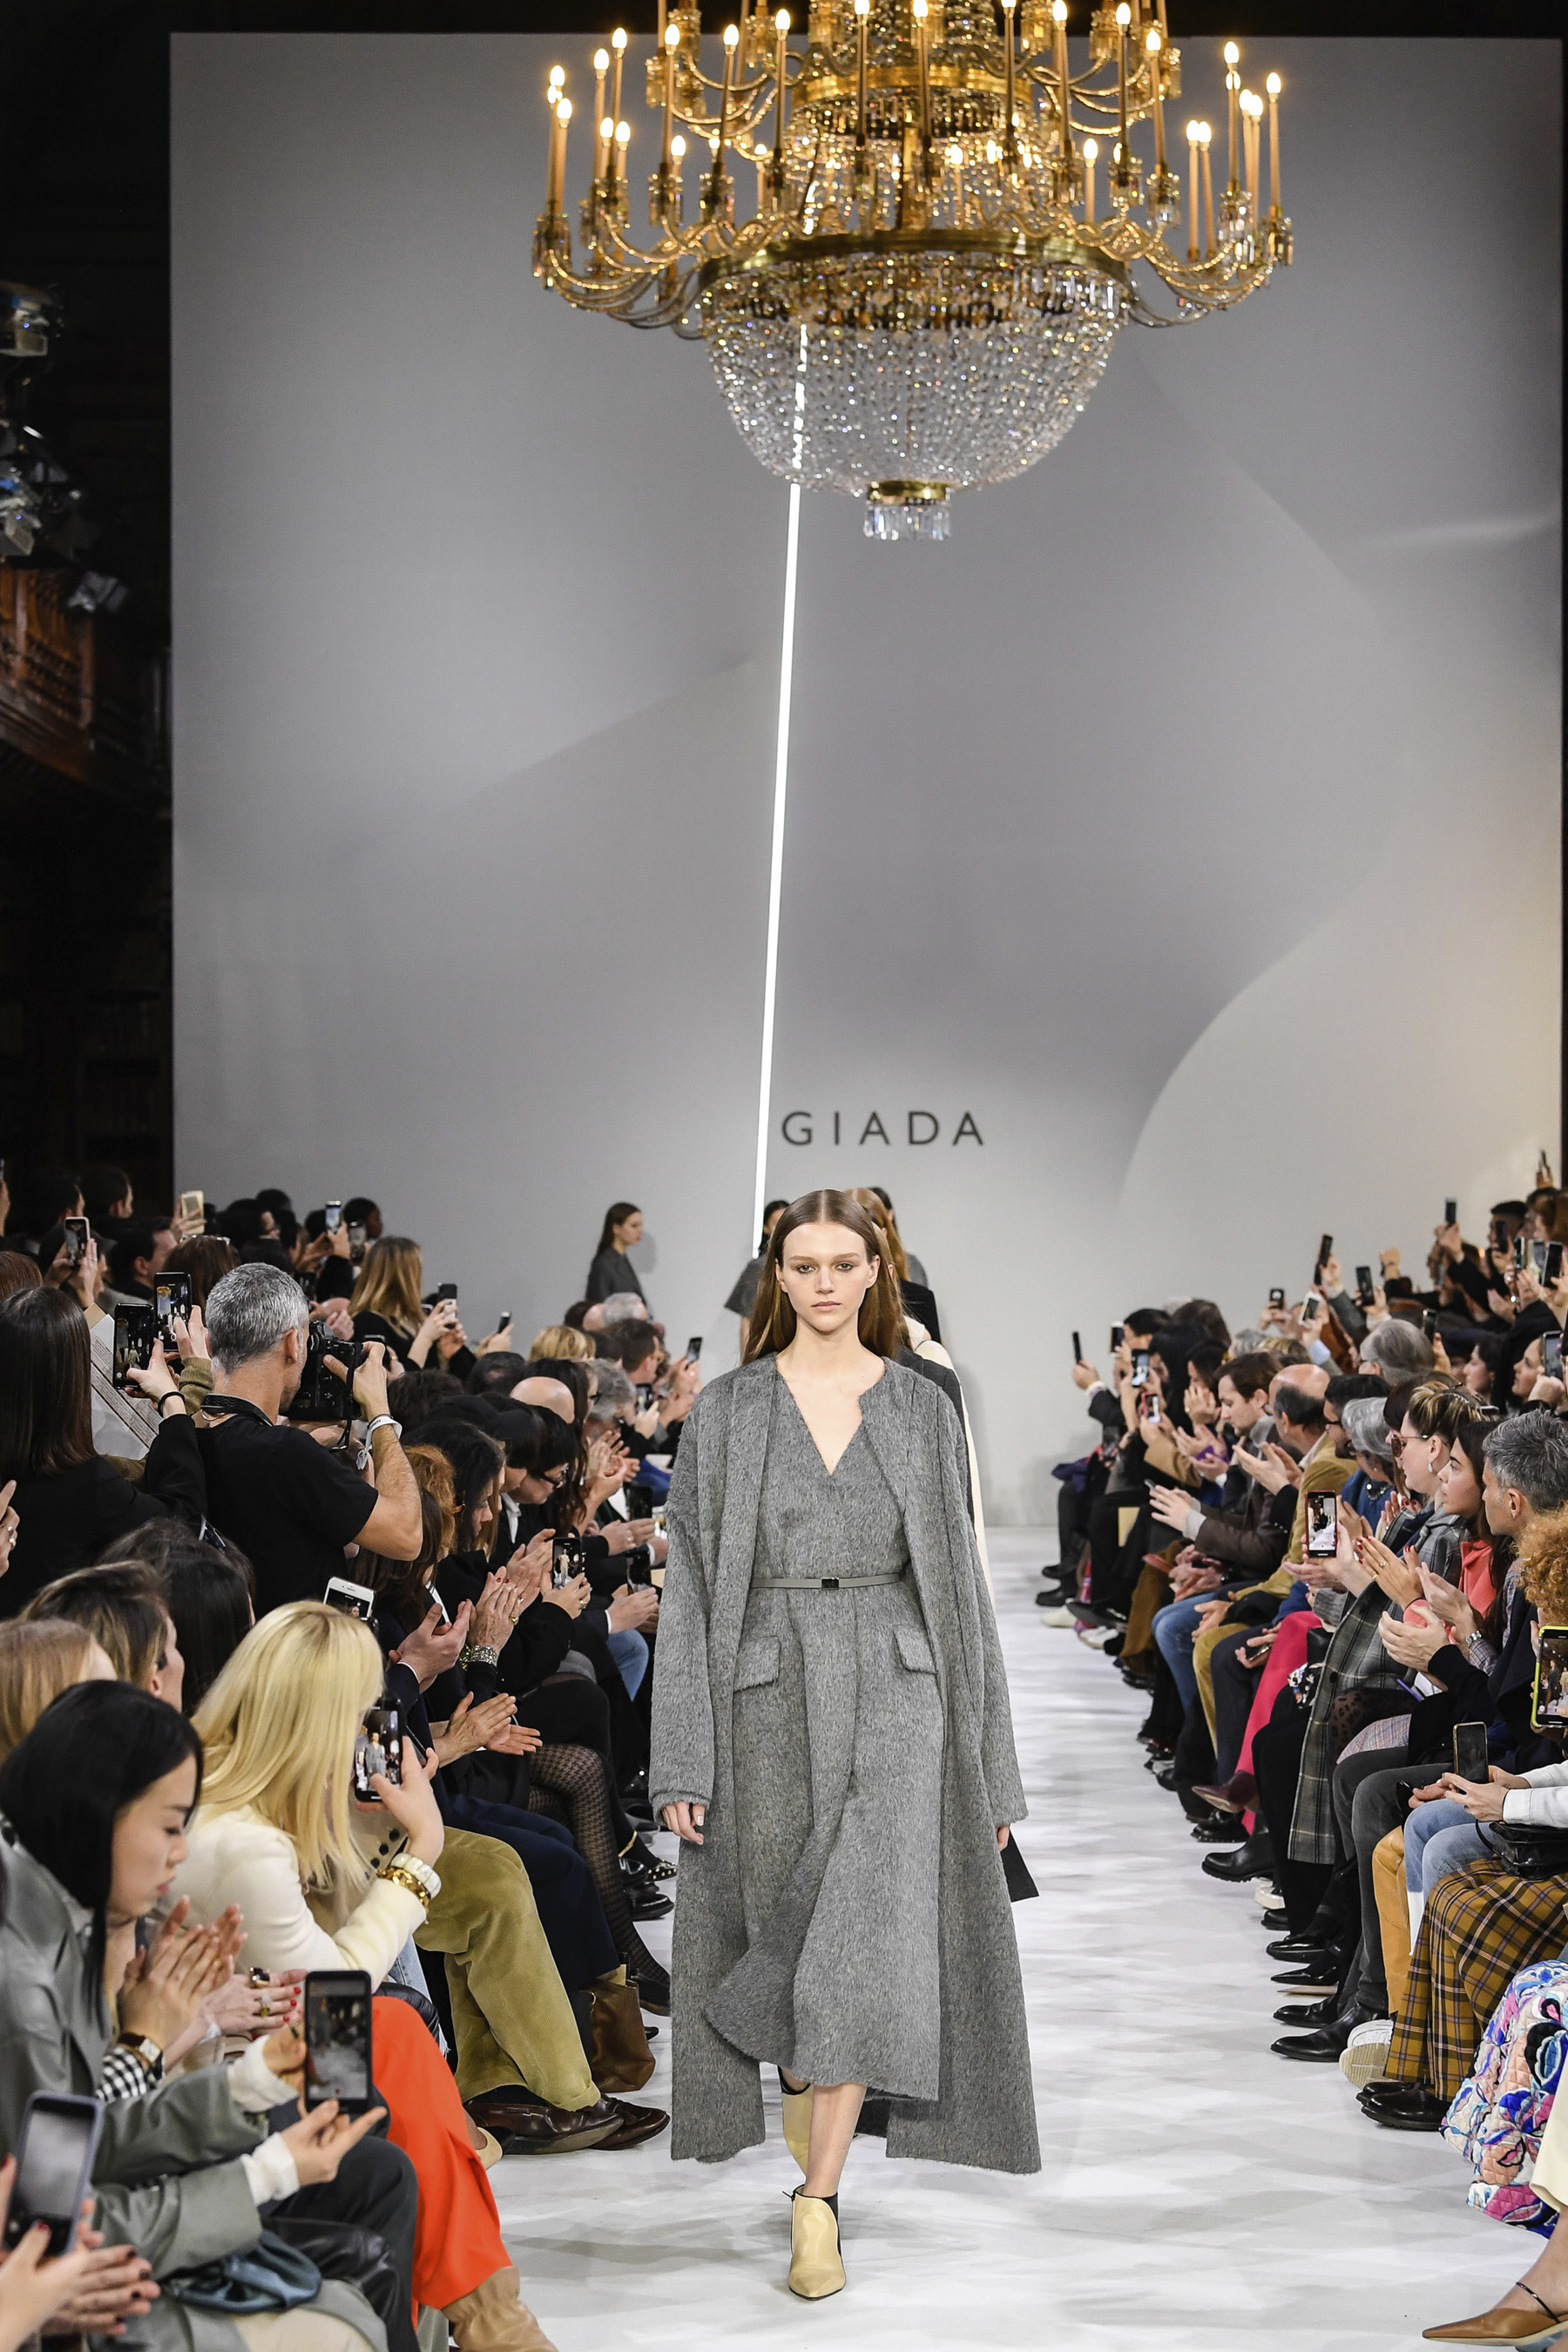 Giada Fall 2019 Fashion Show